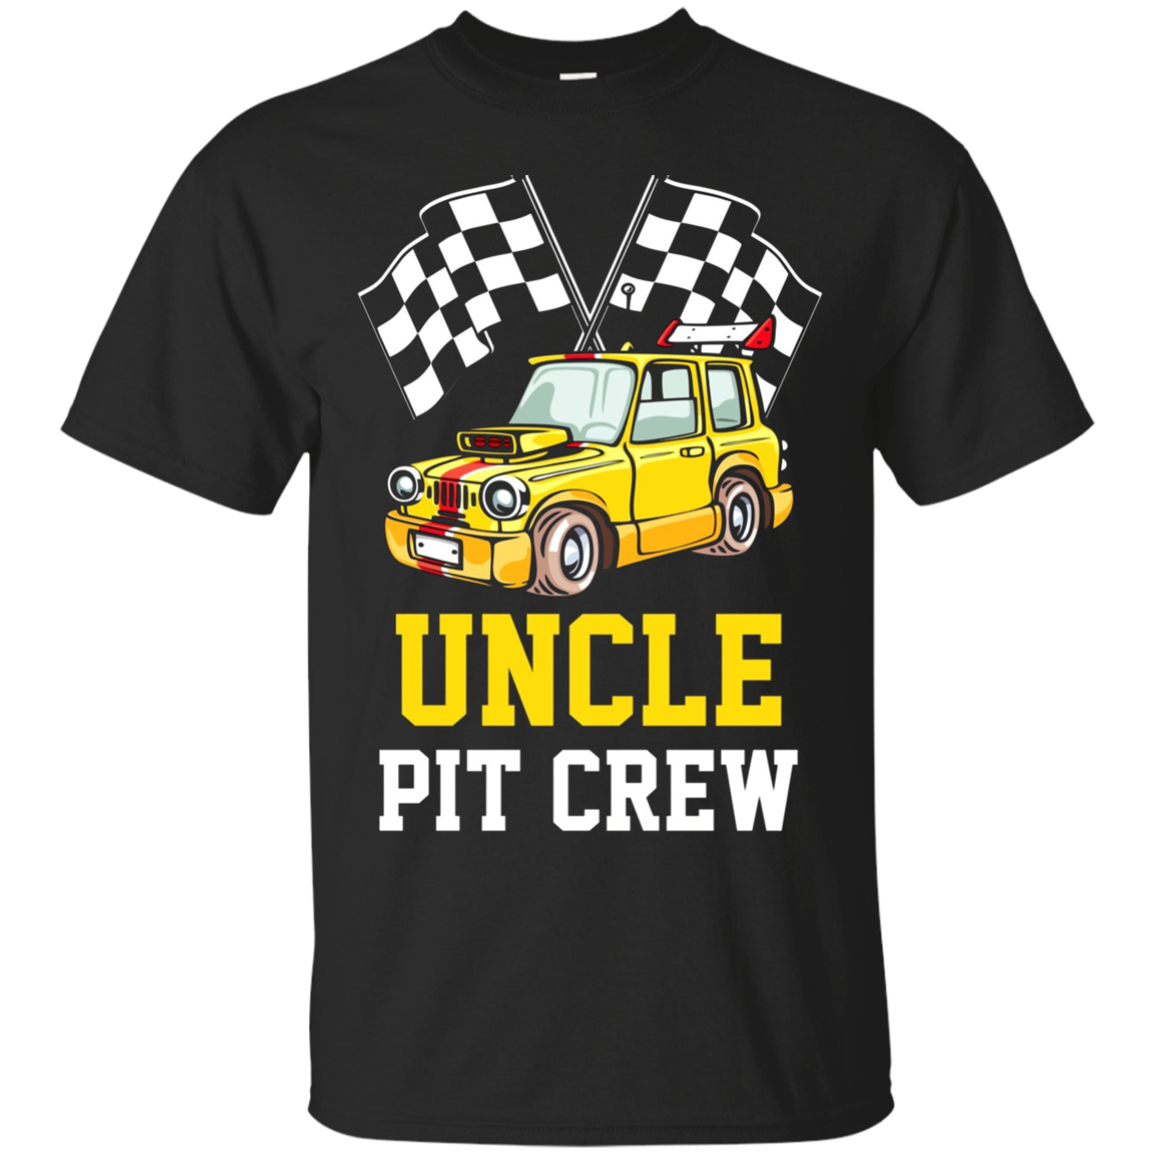 Pit Crew UNCLE Back Print Long Sleeve T-Shirt Race Car